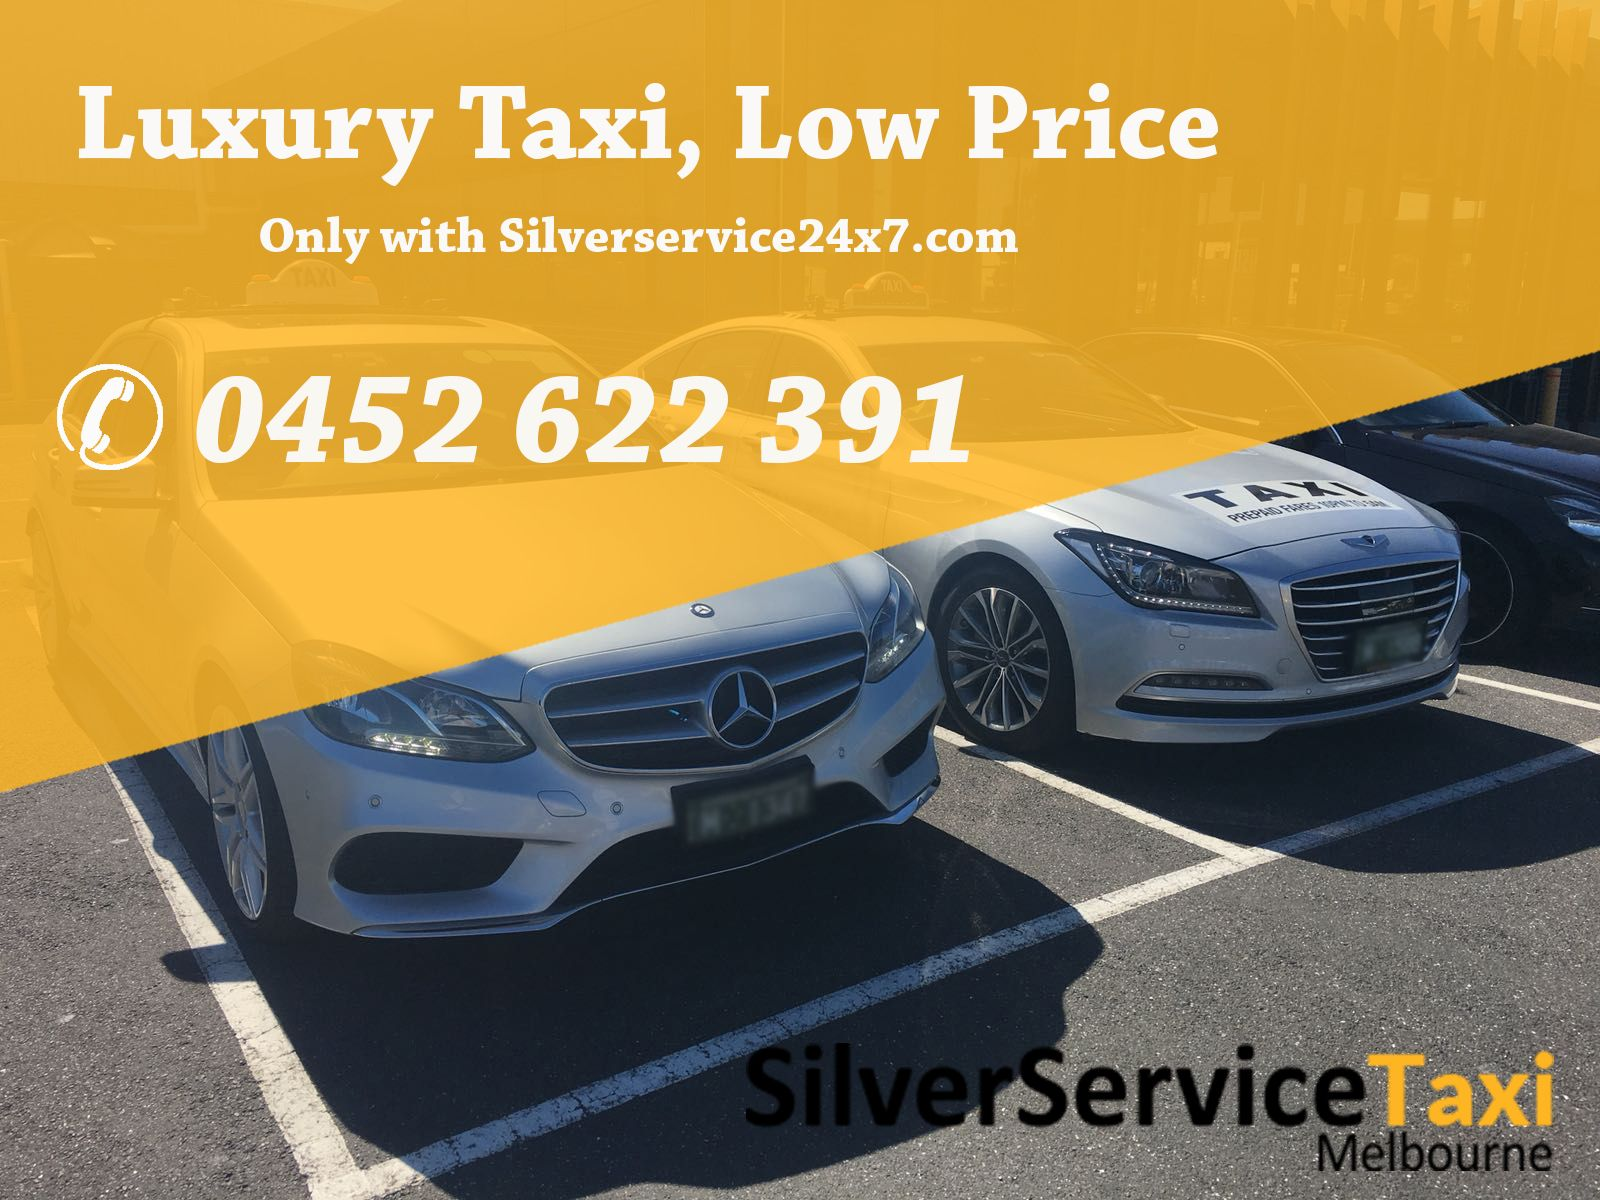 Travel With Luxury With Silverservice24x7 Luxury Silver Taxi